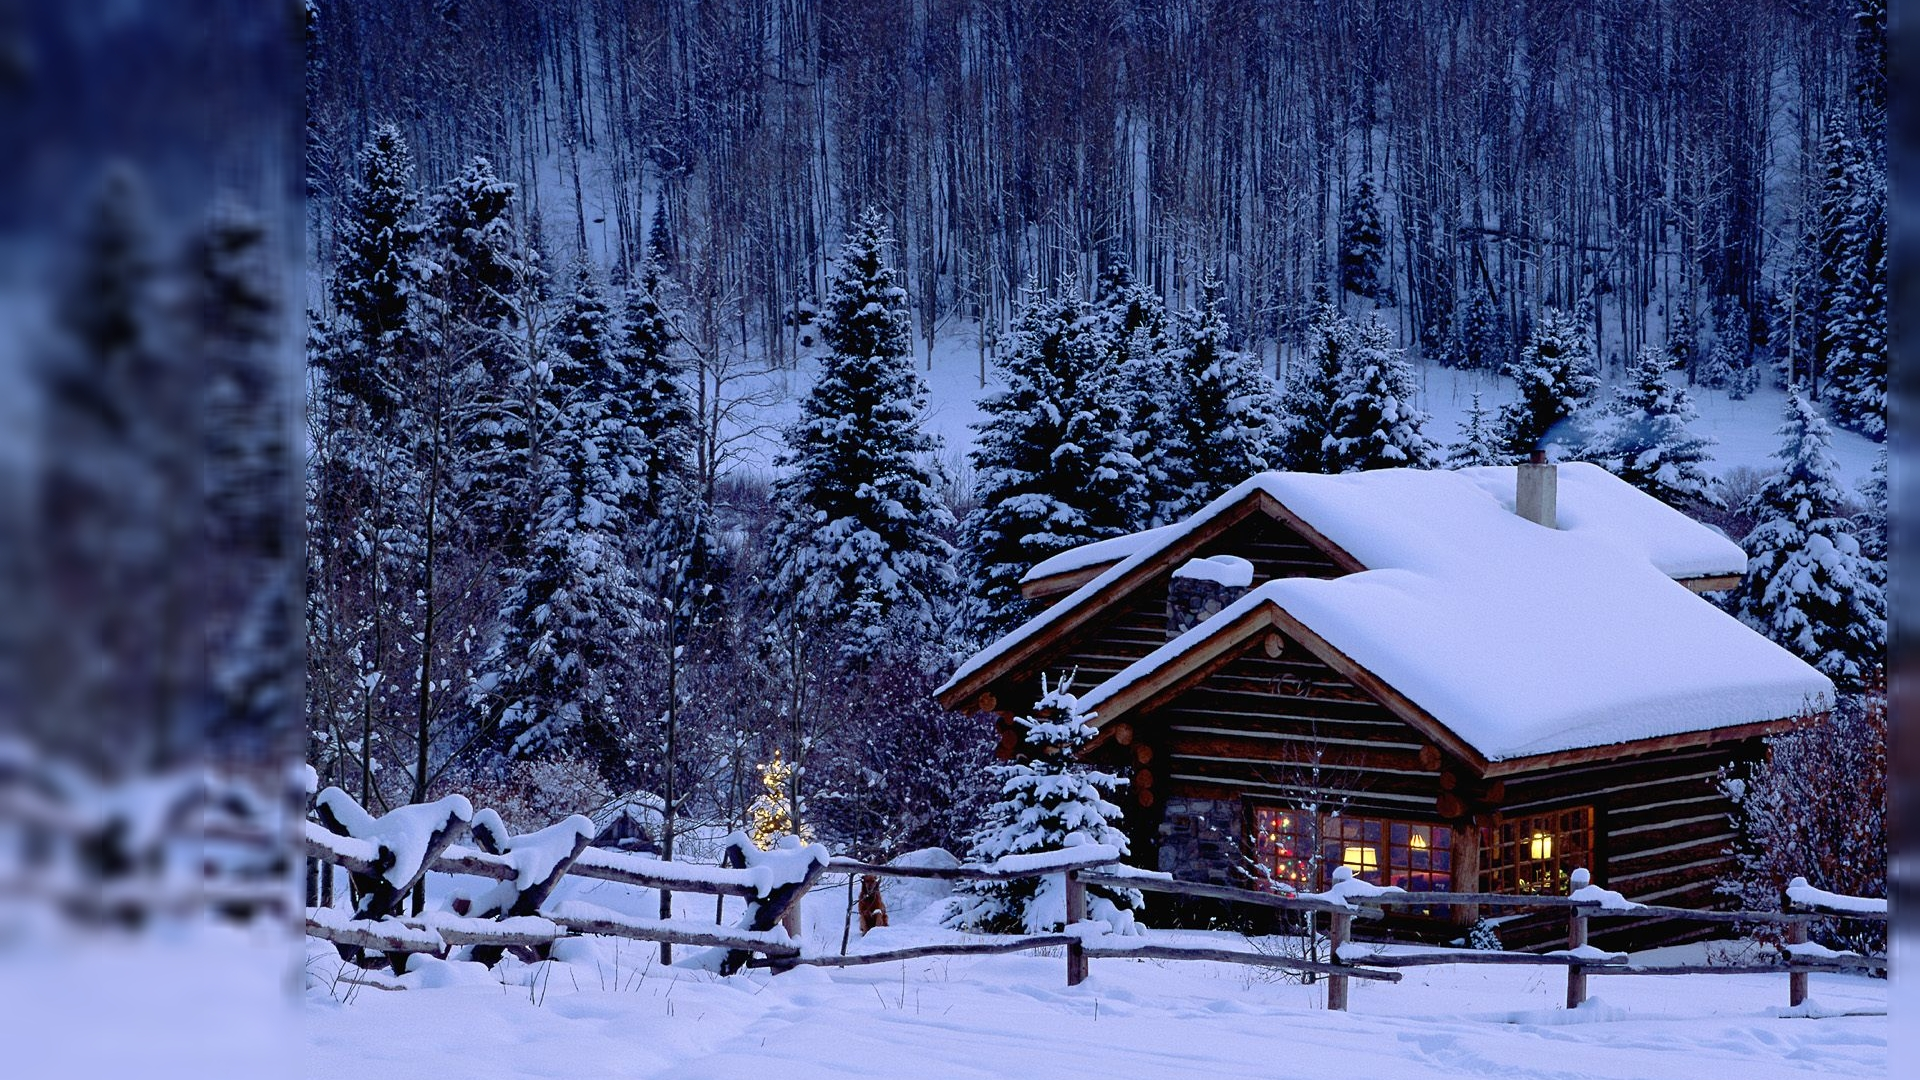 winter wallpaper themes - wallpapersafari